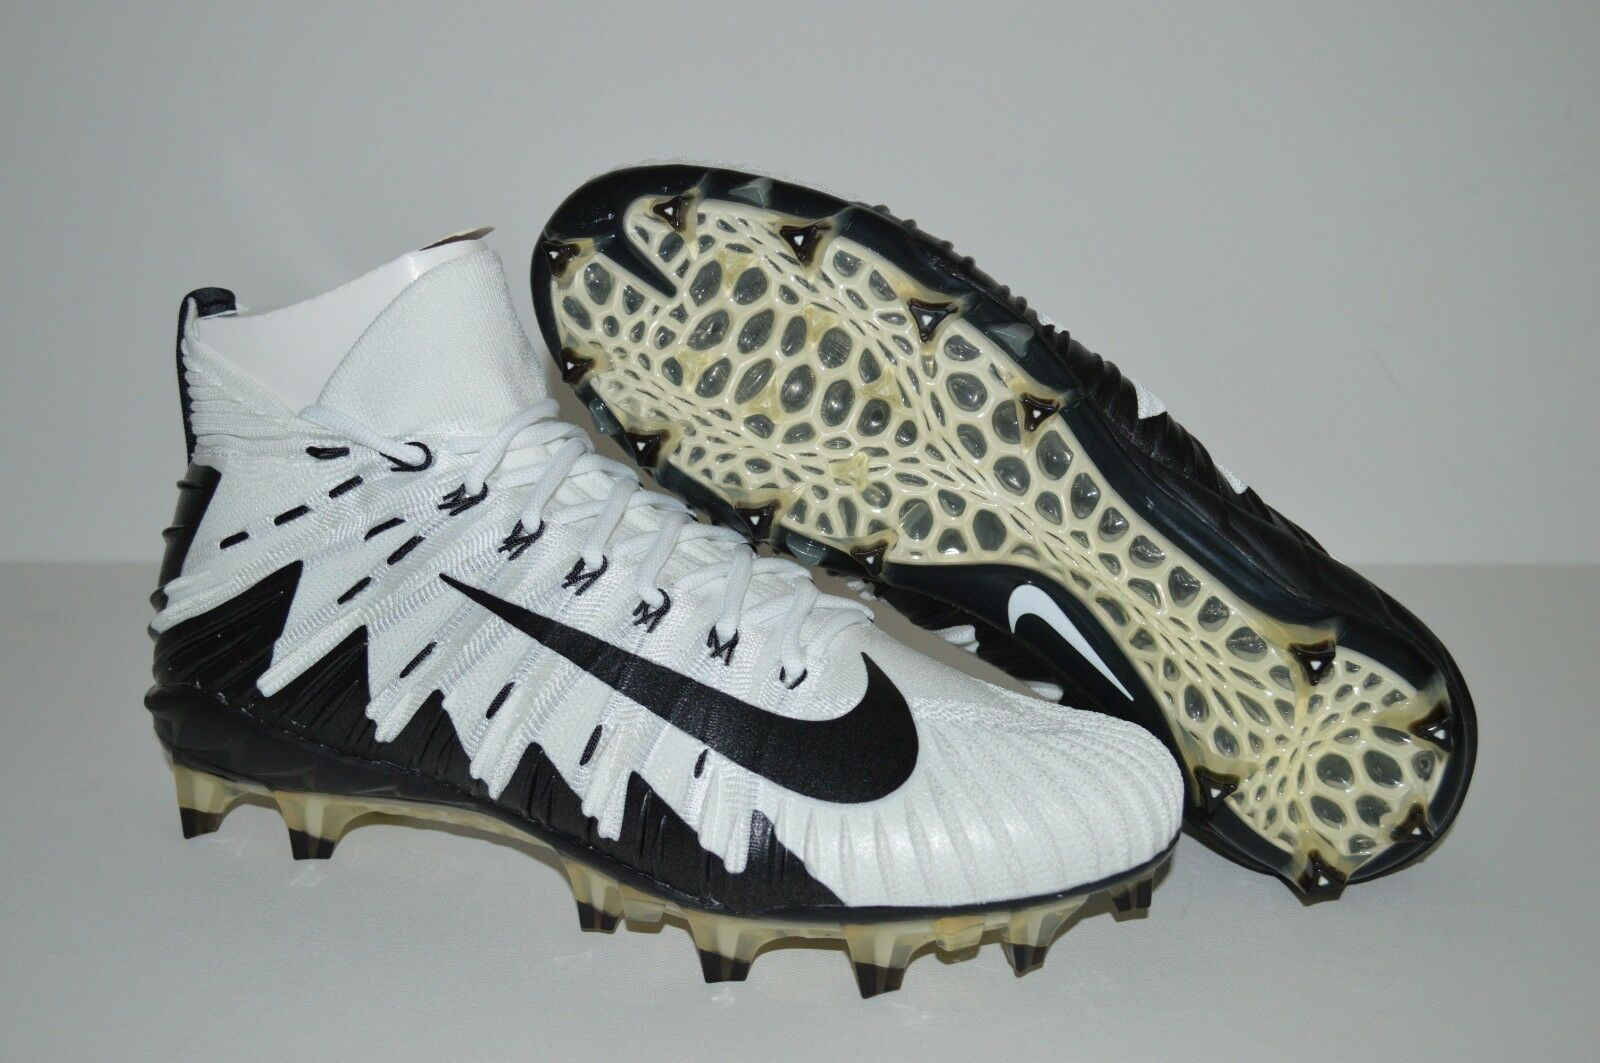 NIKE ALPHA MENACE ELITE FOOTBALL CLEATS MEN'S SIZE 10.5 WHITE BLACK 877141-100